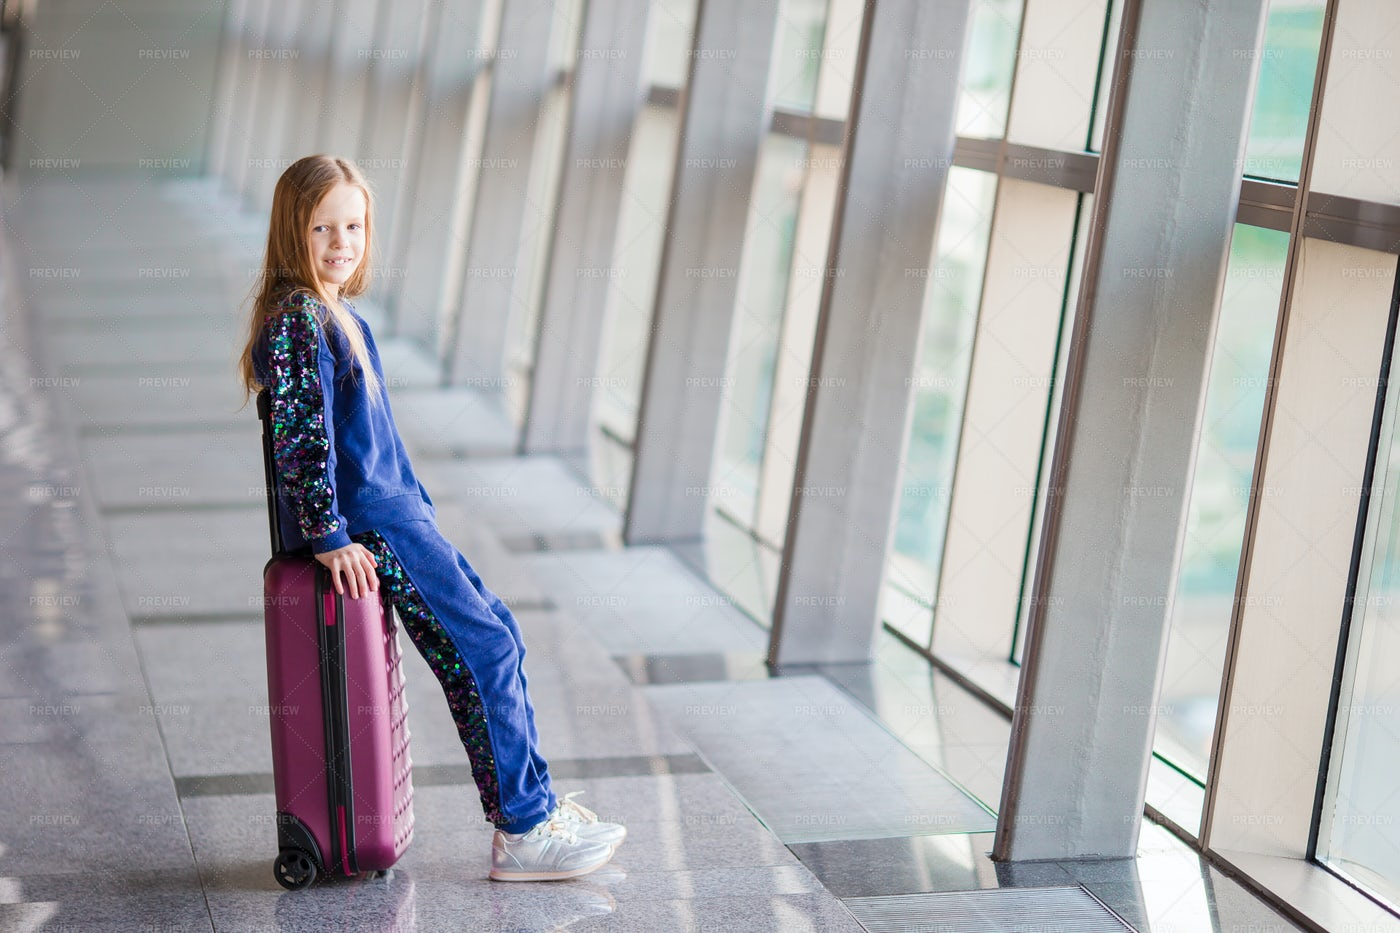 Little Girl In Airport: Stock Photos